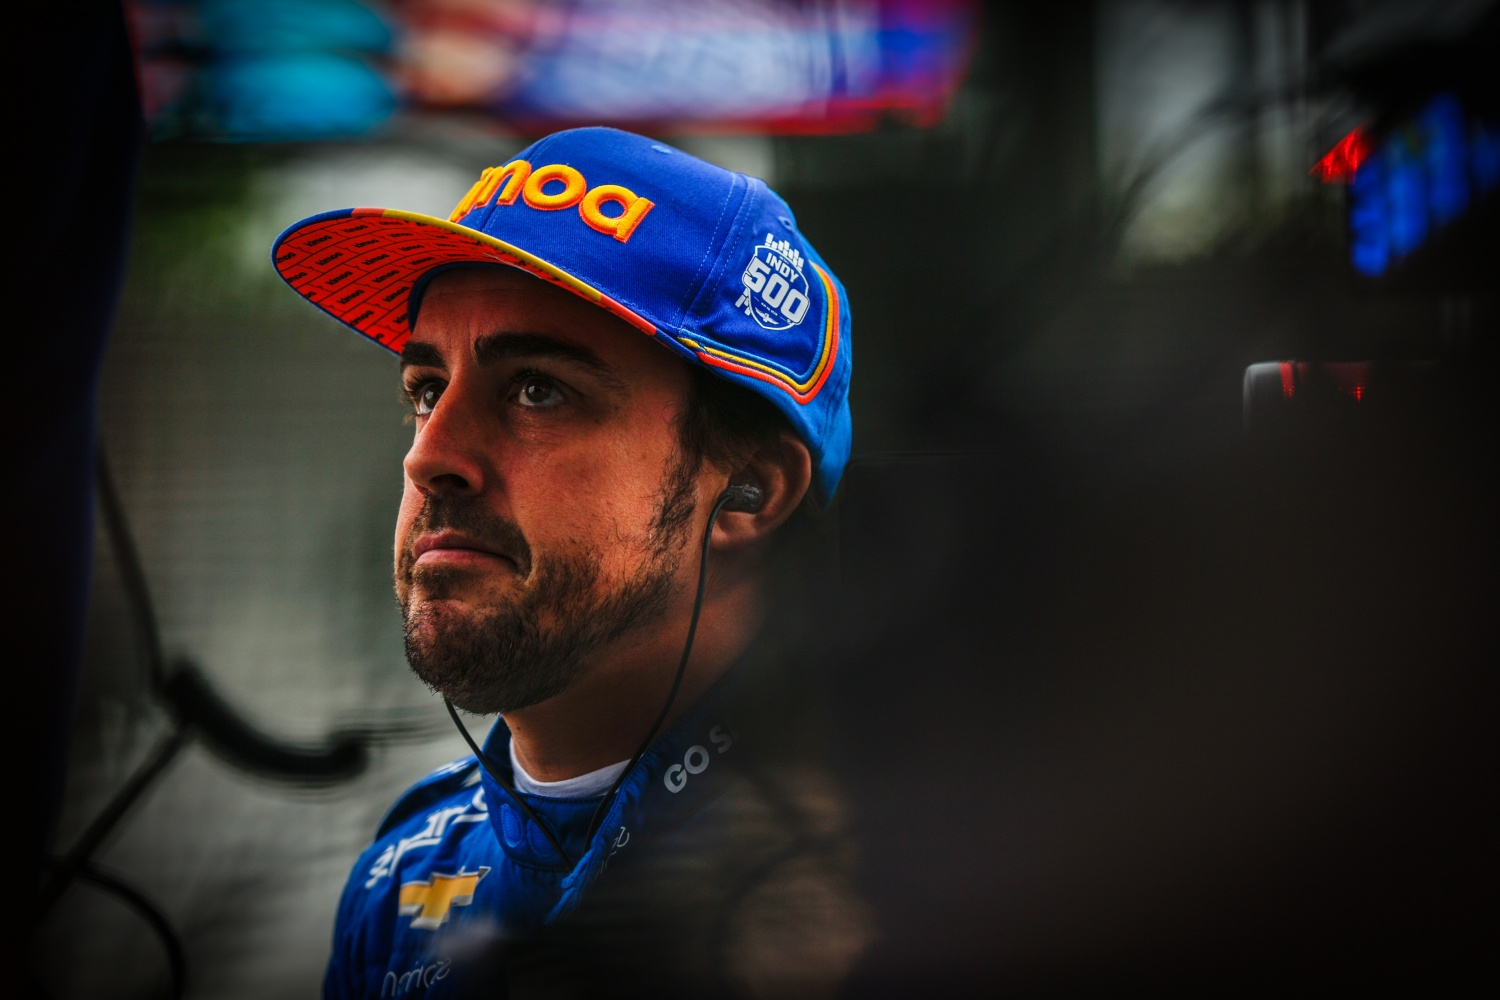 Fernando Alonso - McLaren Racing